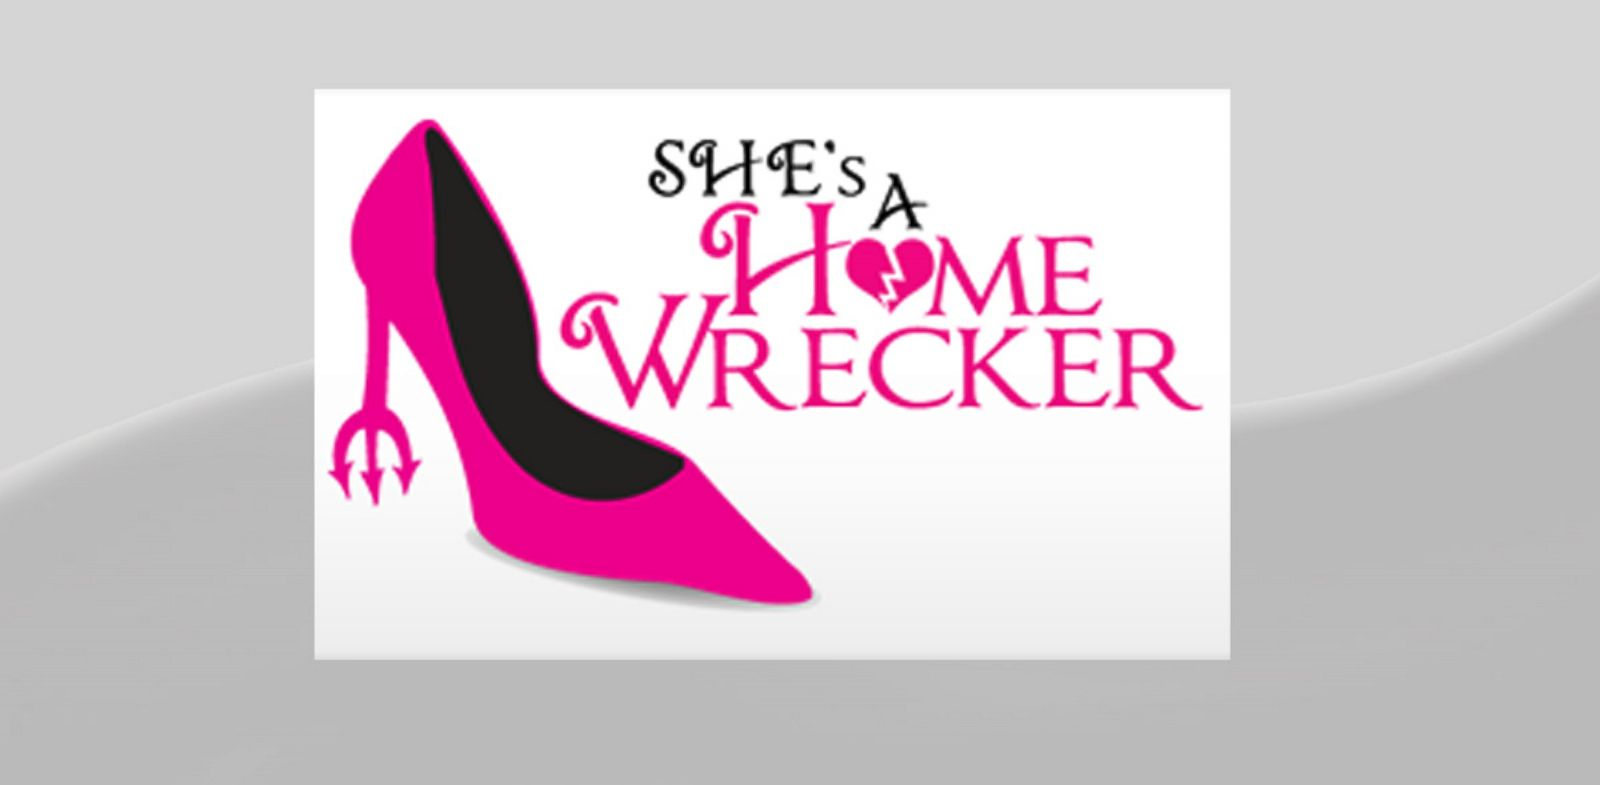 PHOTO: The logo of Shesahomewrecker.com